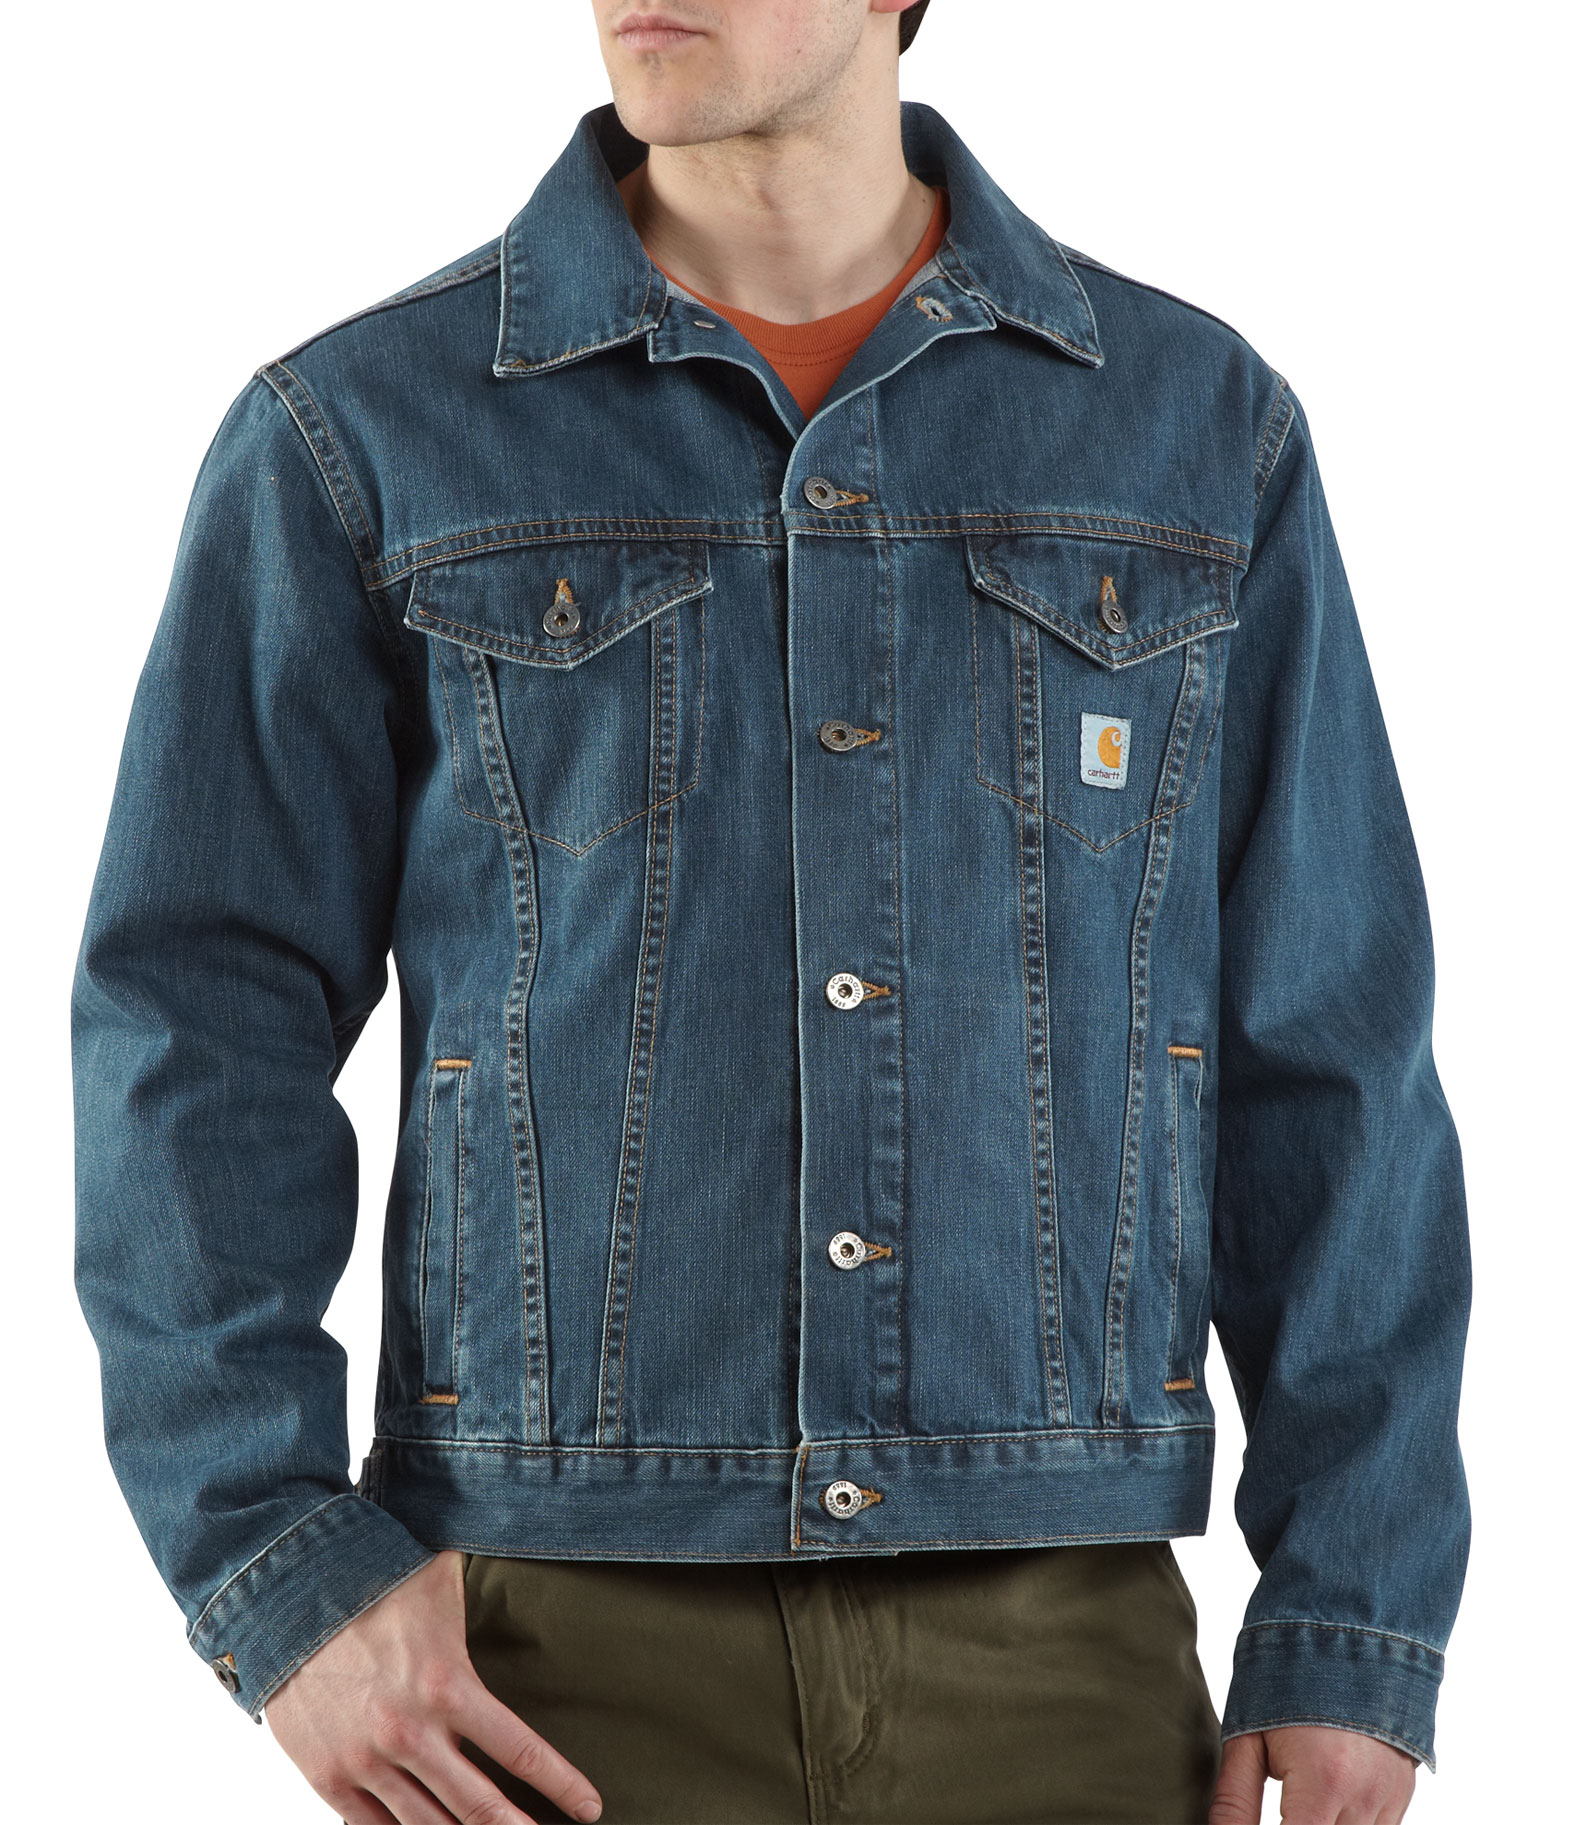 Carhartt Mens Denim Jean Jacket/Unlined